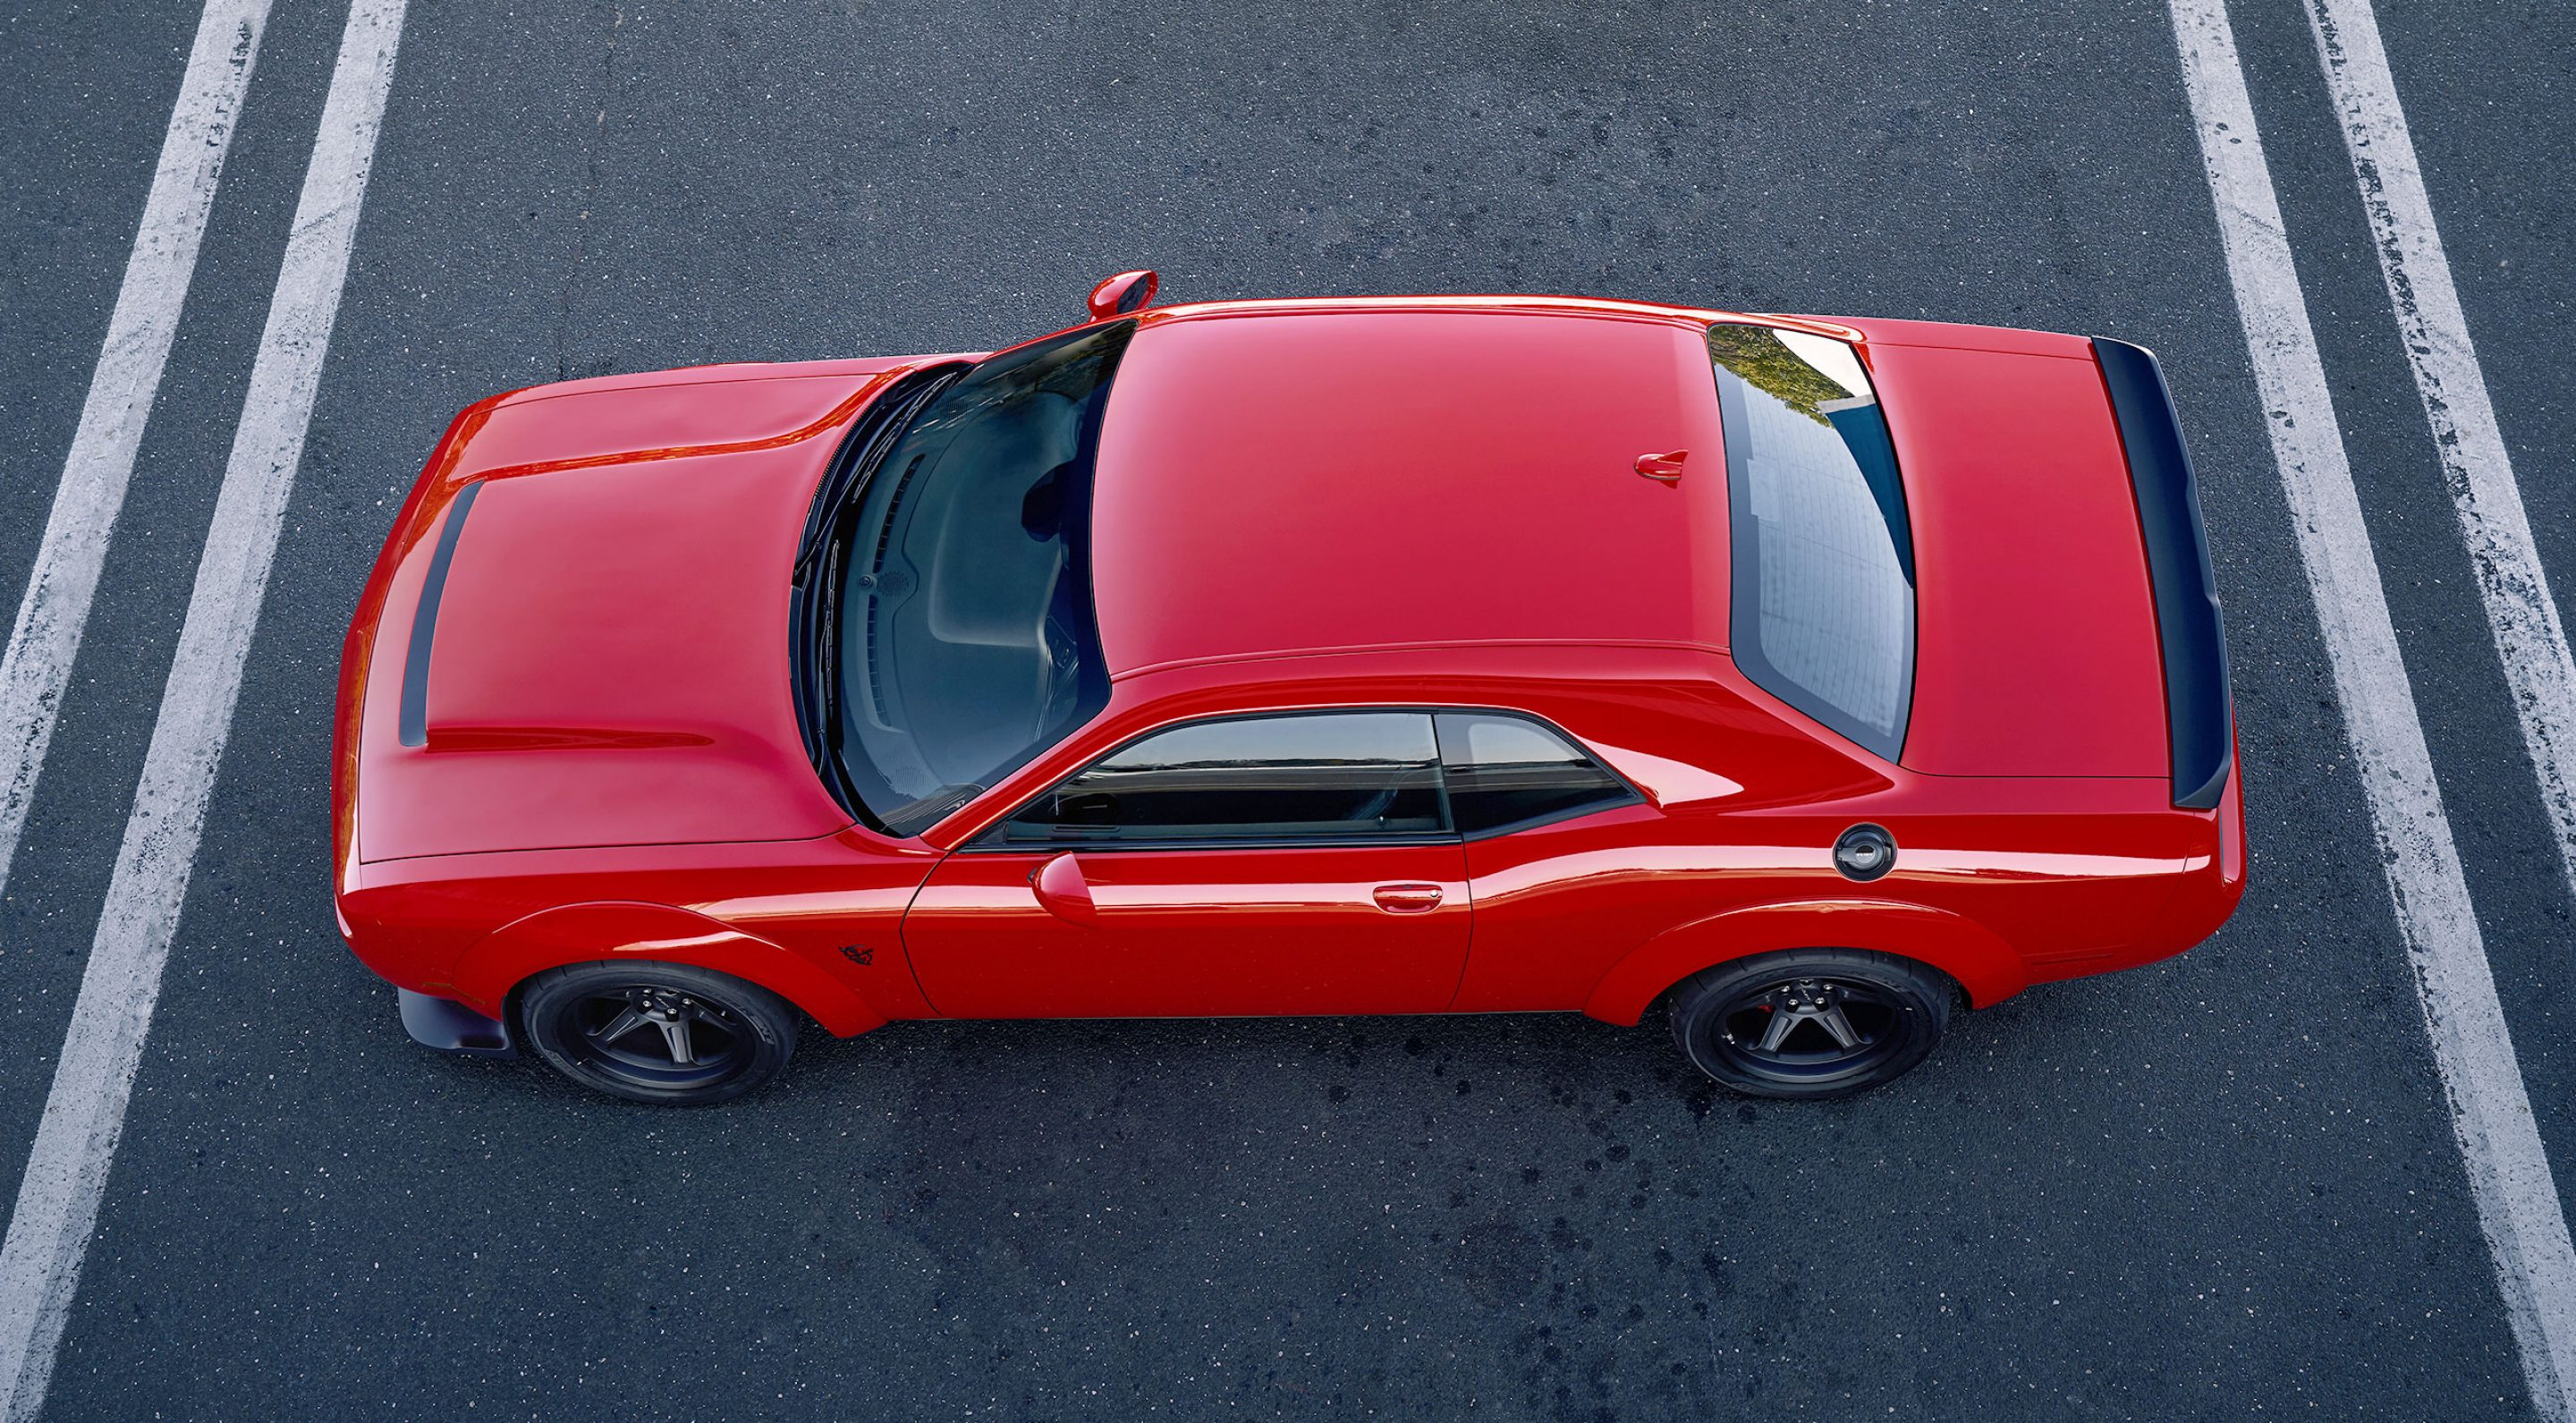 Shop The Latest Dodge Demon Lease Finance Offers In Morehead Ky